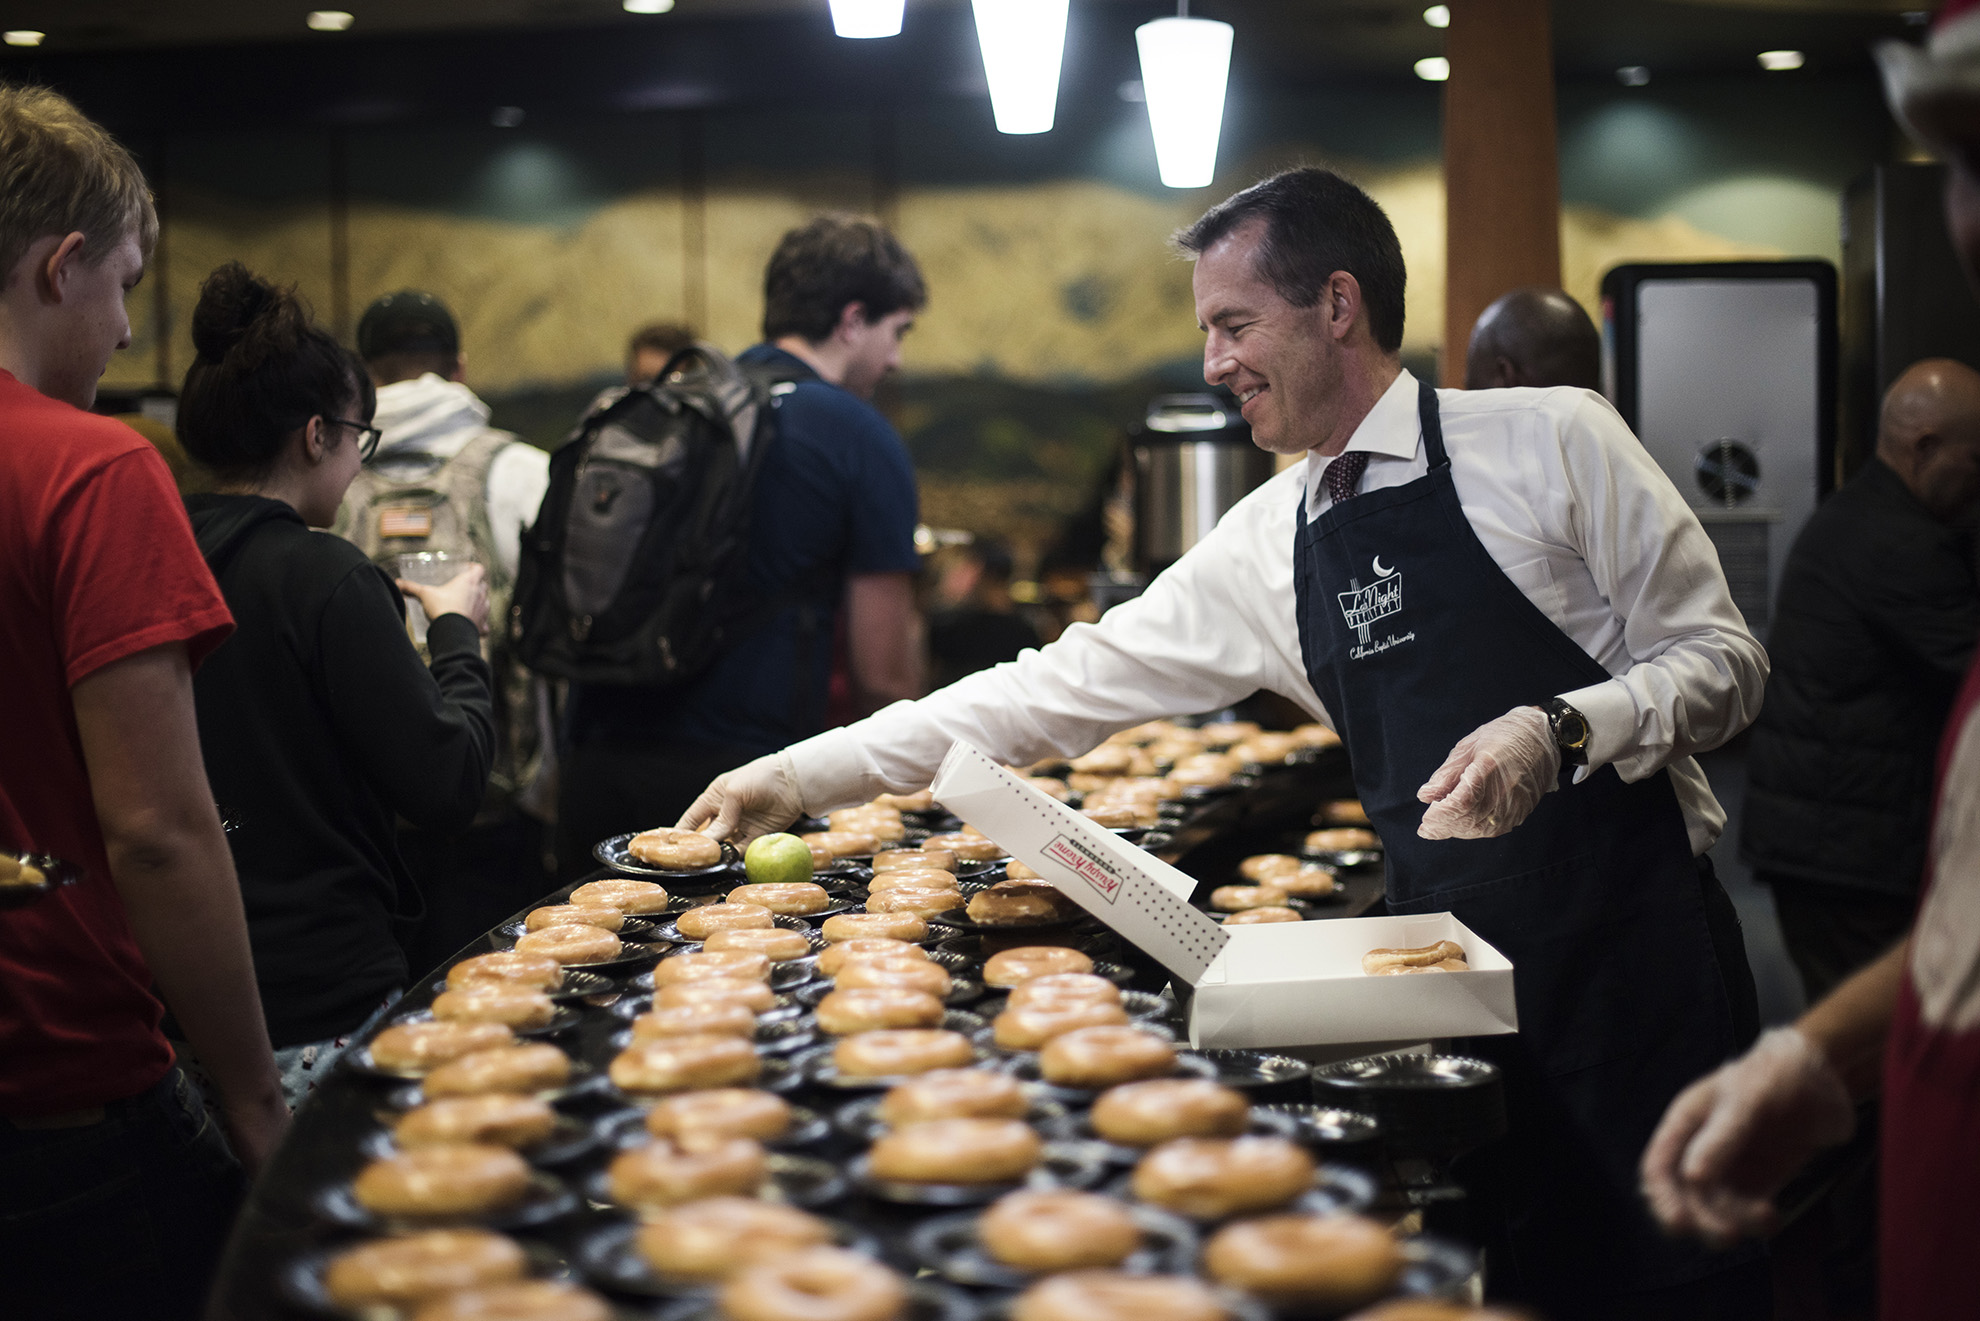 Jamie Perlee, a communication studies and business administration senior, took a break from preparing for finals to attend a late-night breakfast at California Baptist University on Dec. 6.